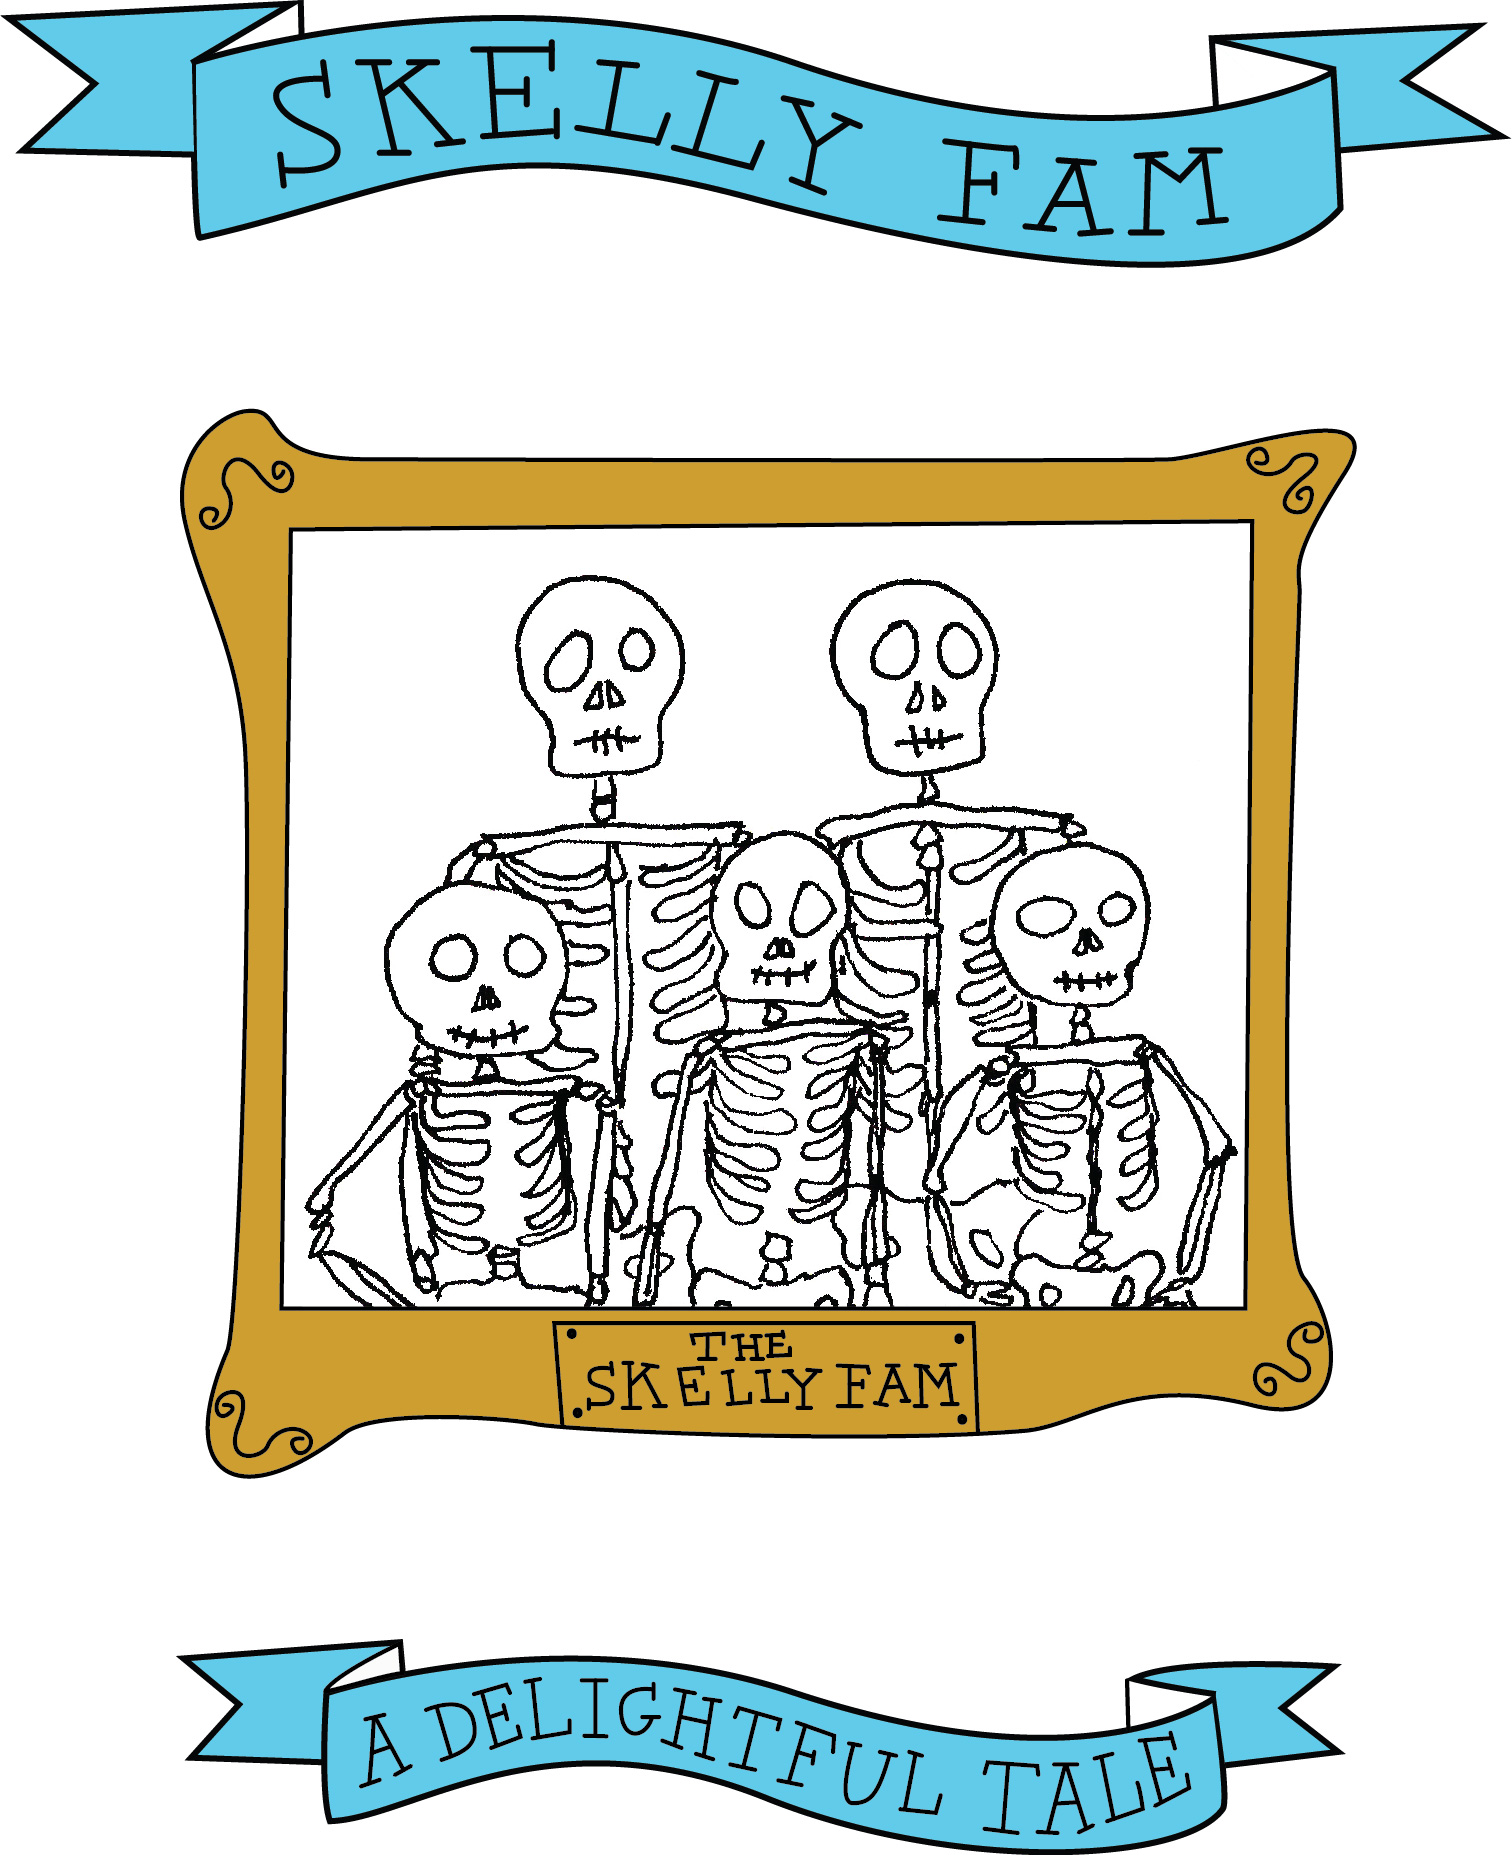 Skelly Fam Cover For Website With Colour.jpg